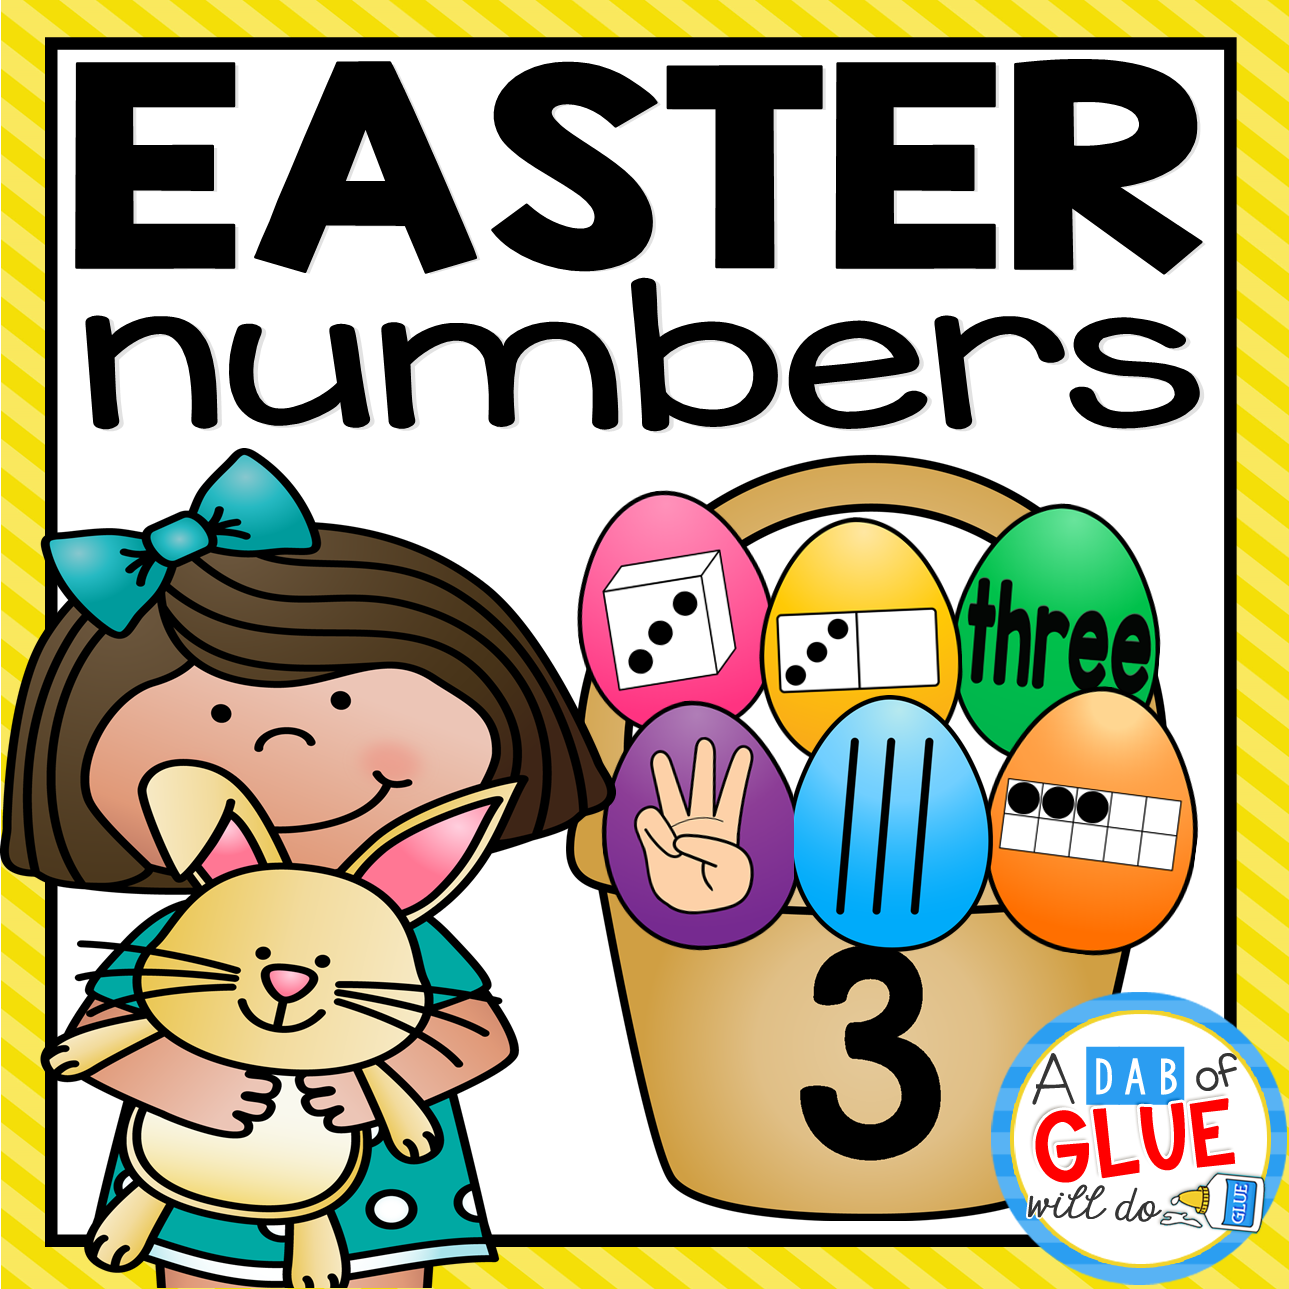 Easter Number Match-Up